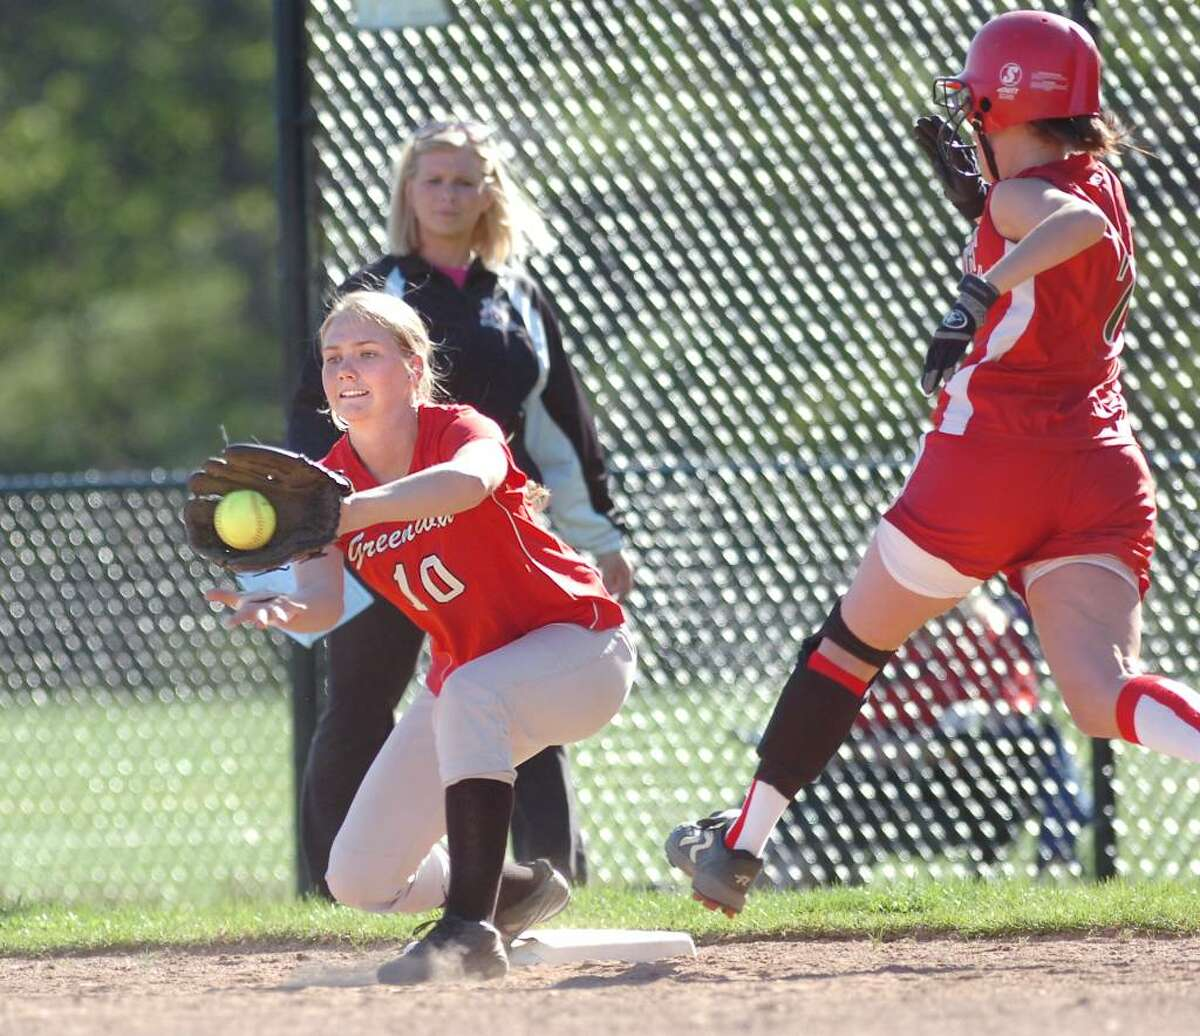 Top of the 4th inning, Bianca Passaniti of Fairfield Warde High School, # 7, right, is out by a hair as Greenwich High School first basewoman, Sarah Jarombeck, # 10, left, takes the throw that just beats the Passaniti, at GHS, April 14, 2010.